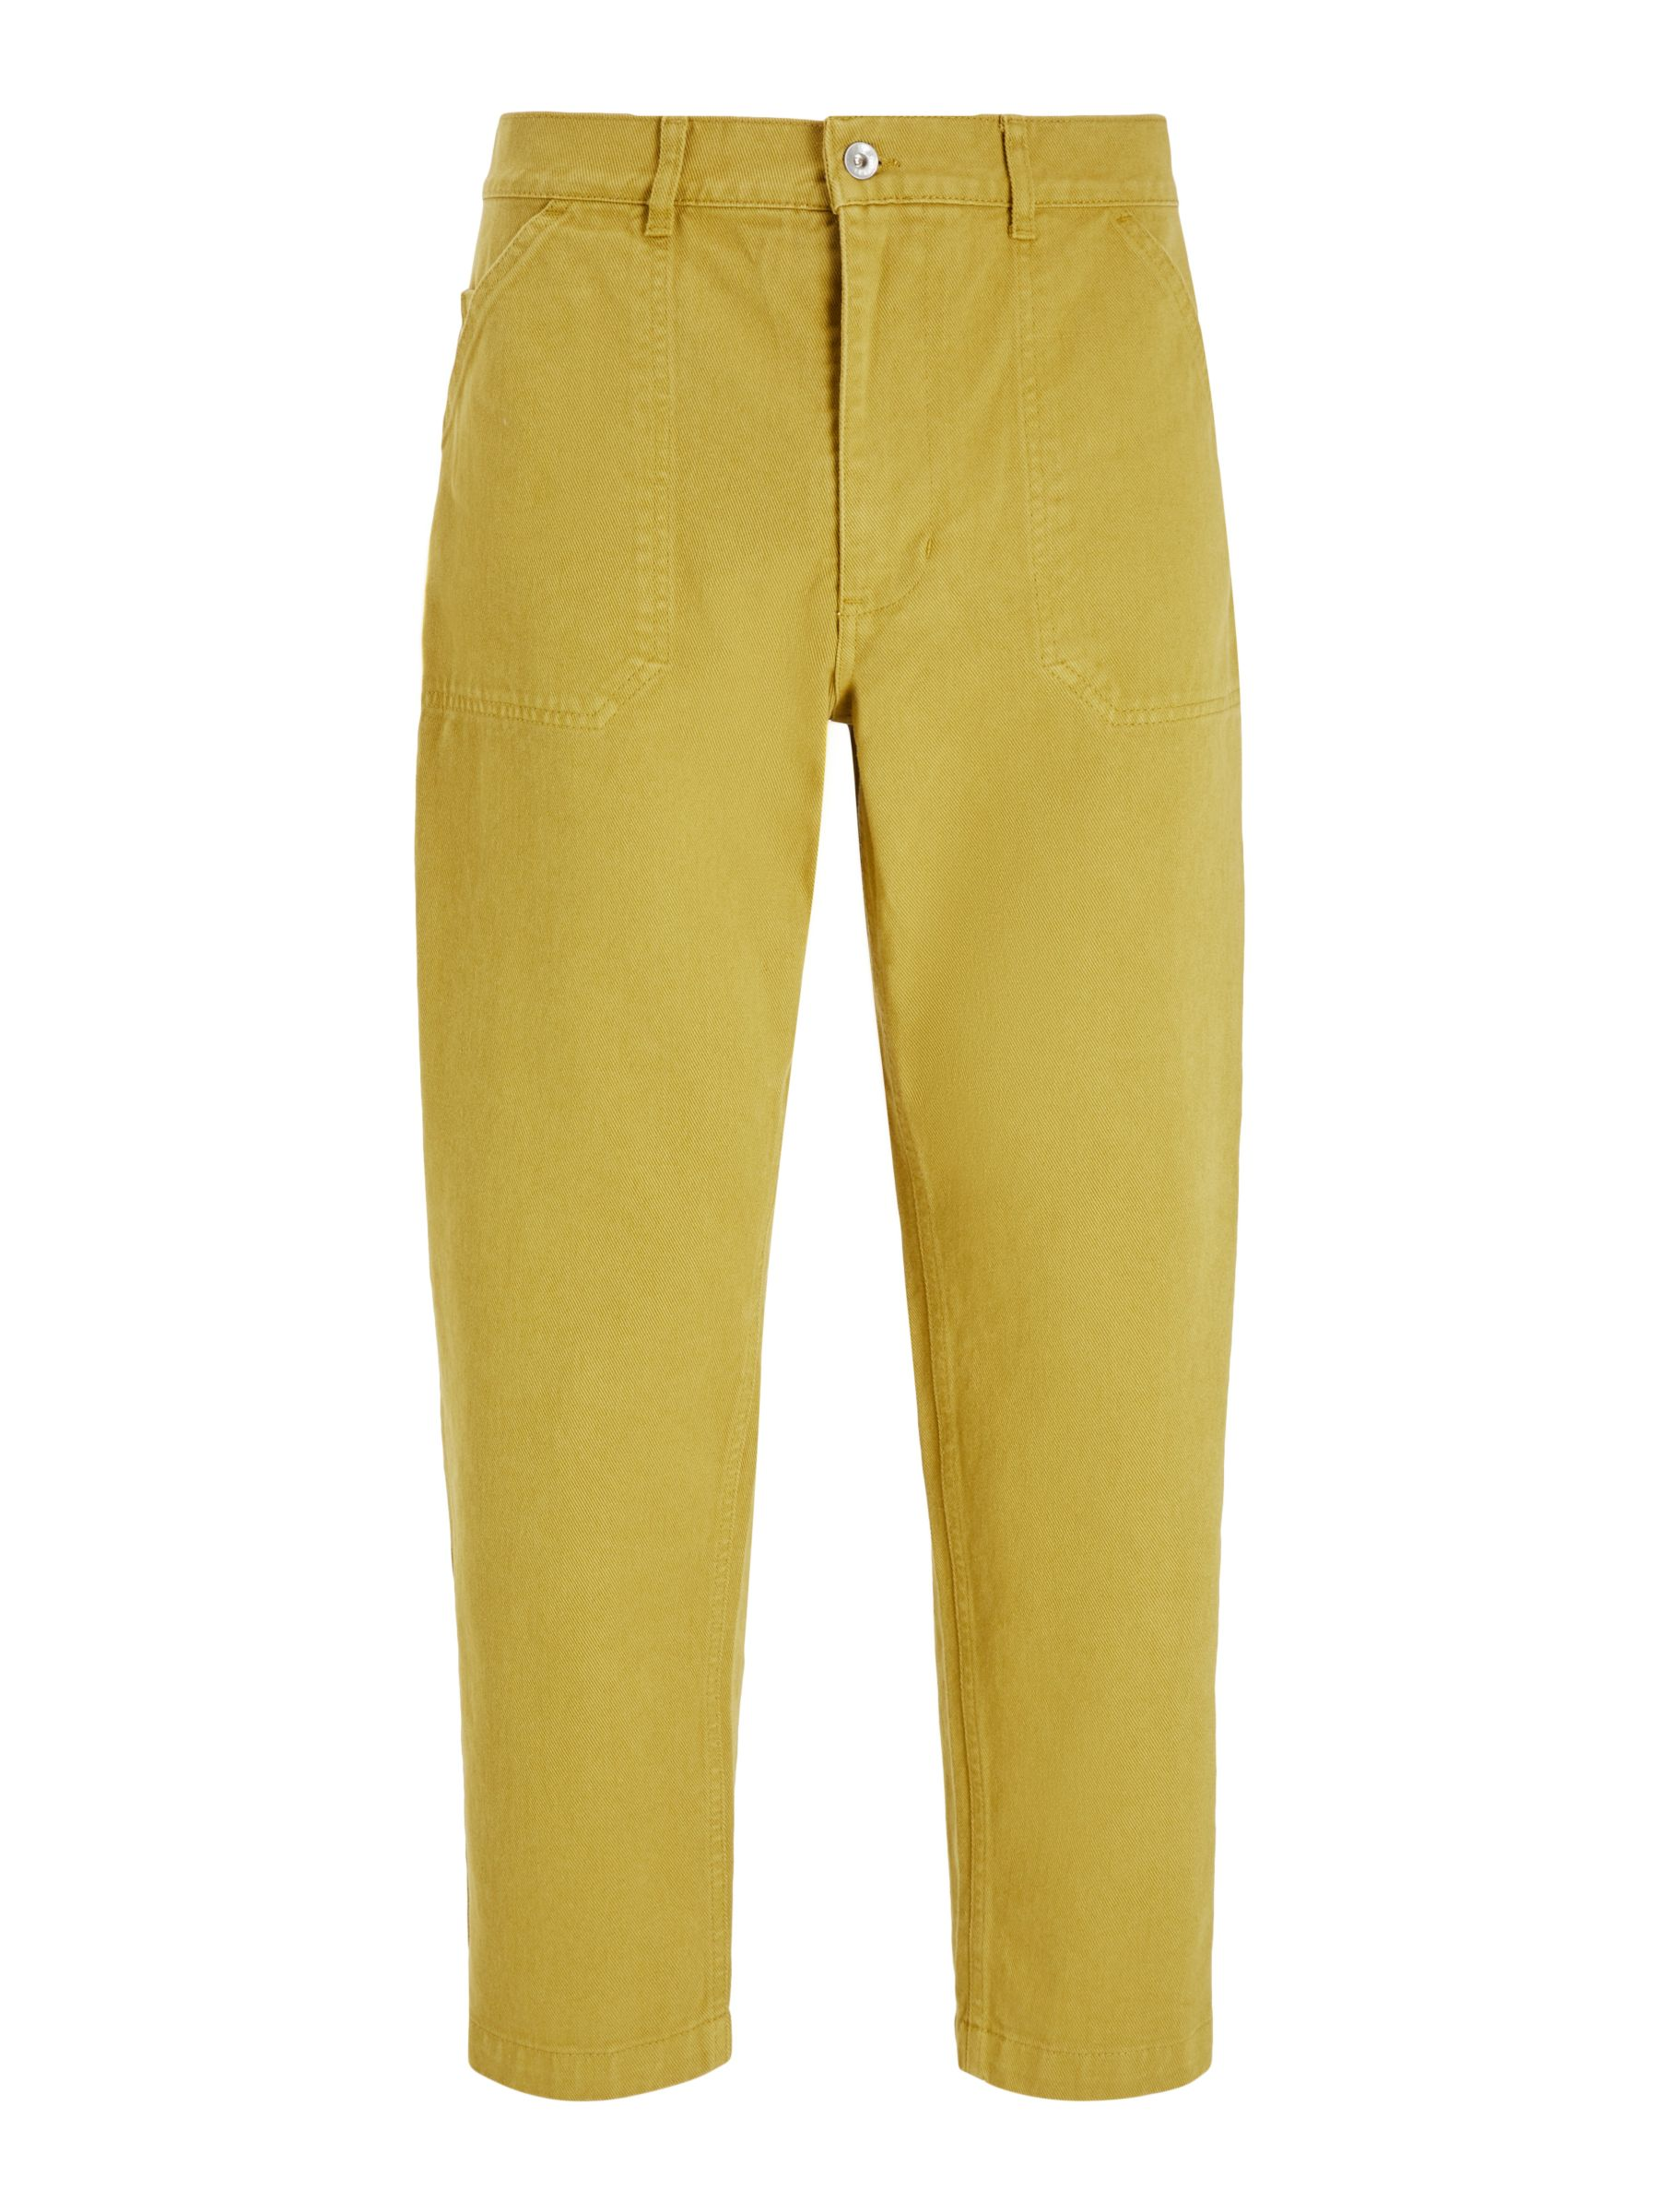 Buy Albam Utility Slim Fit Work Trousers, Tobacco, 30R Online at johnlewis.com